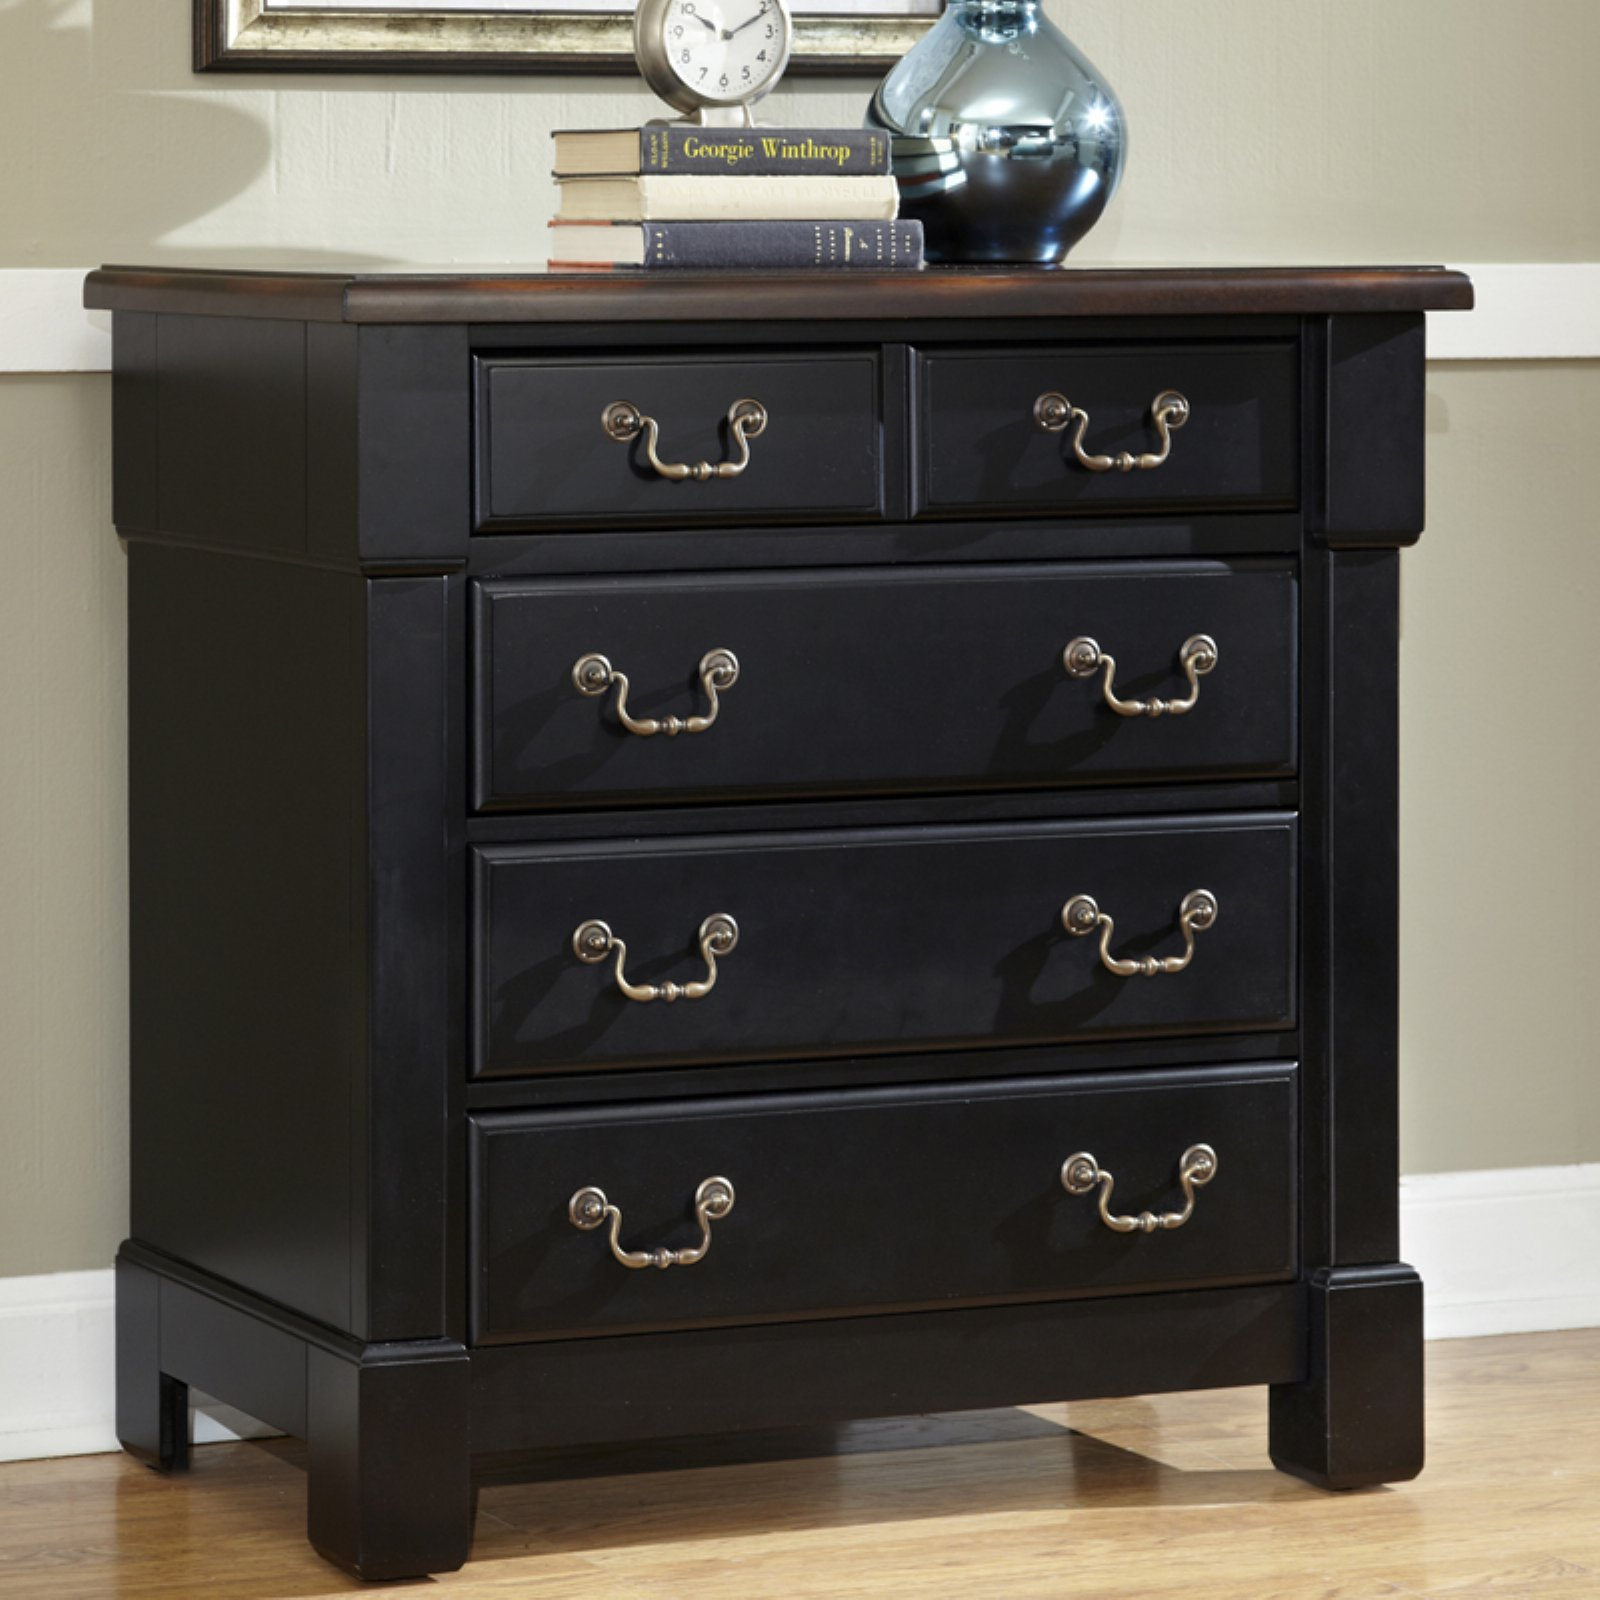 Home Styles The Aspen Collection Drawer Chest, Rustic Cherry/Black